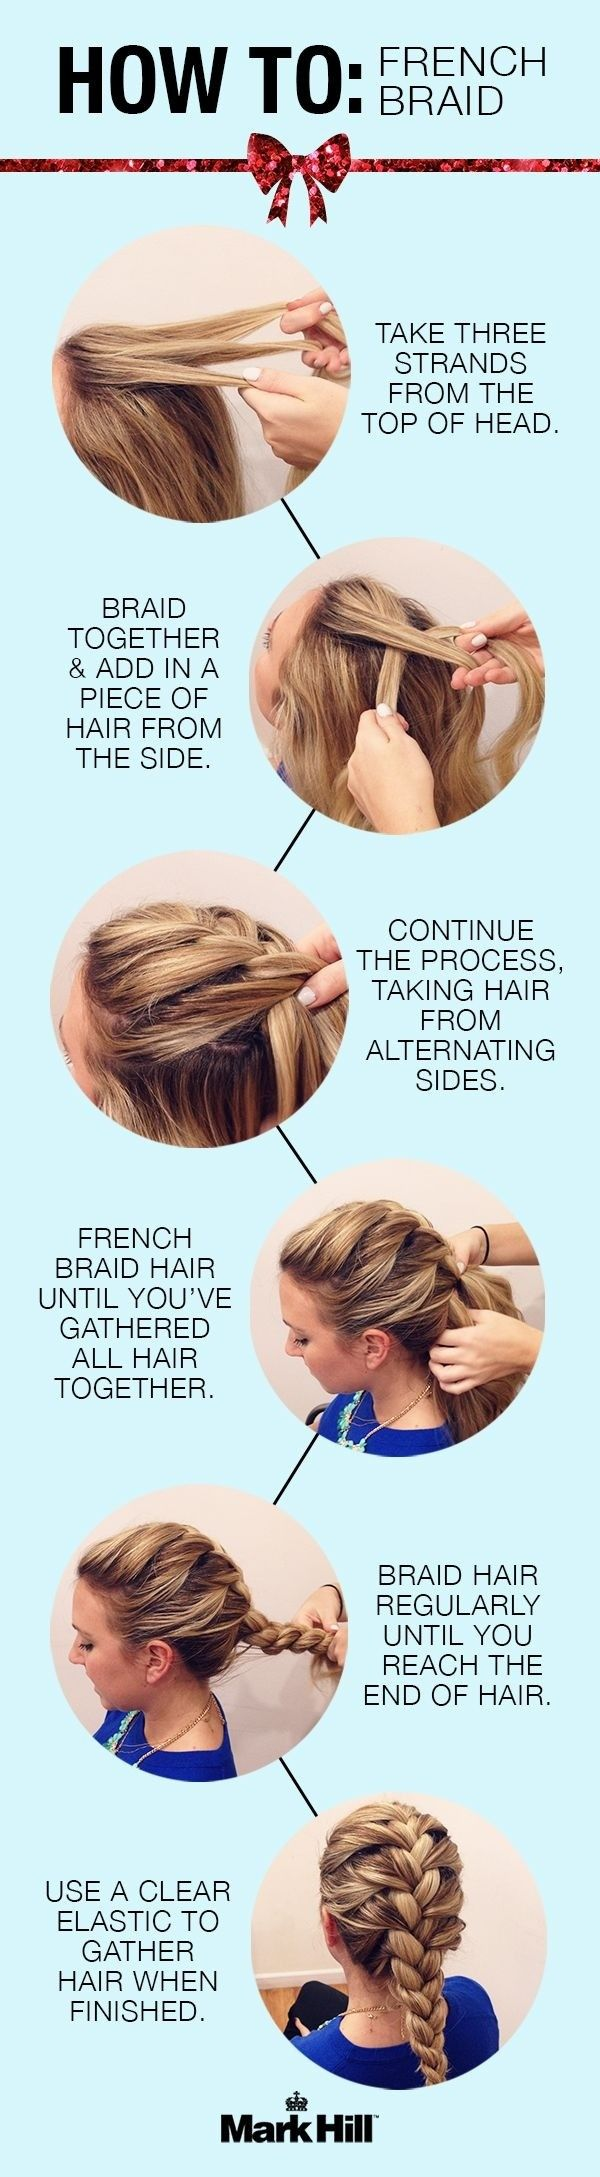 Easy french braid tutorial. A must know how to do.